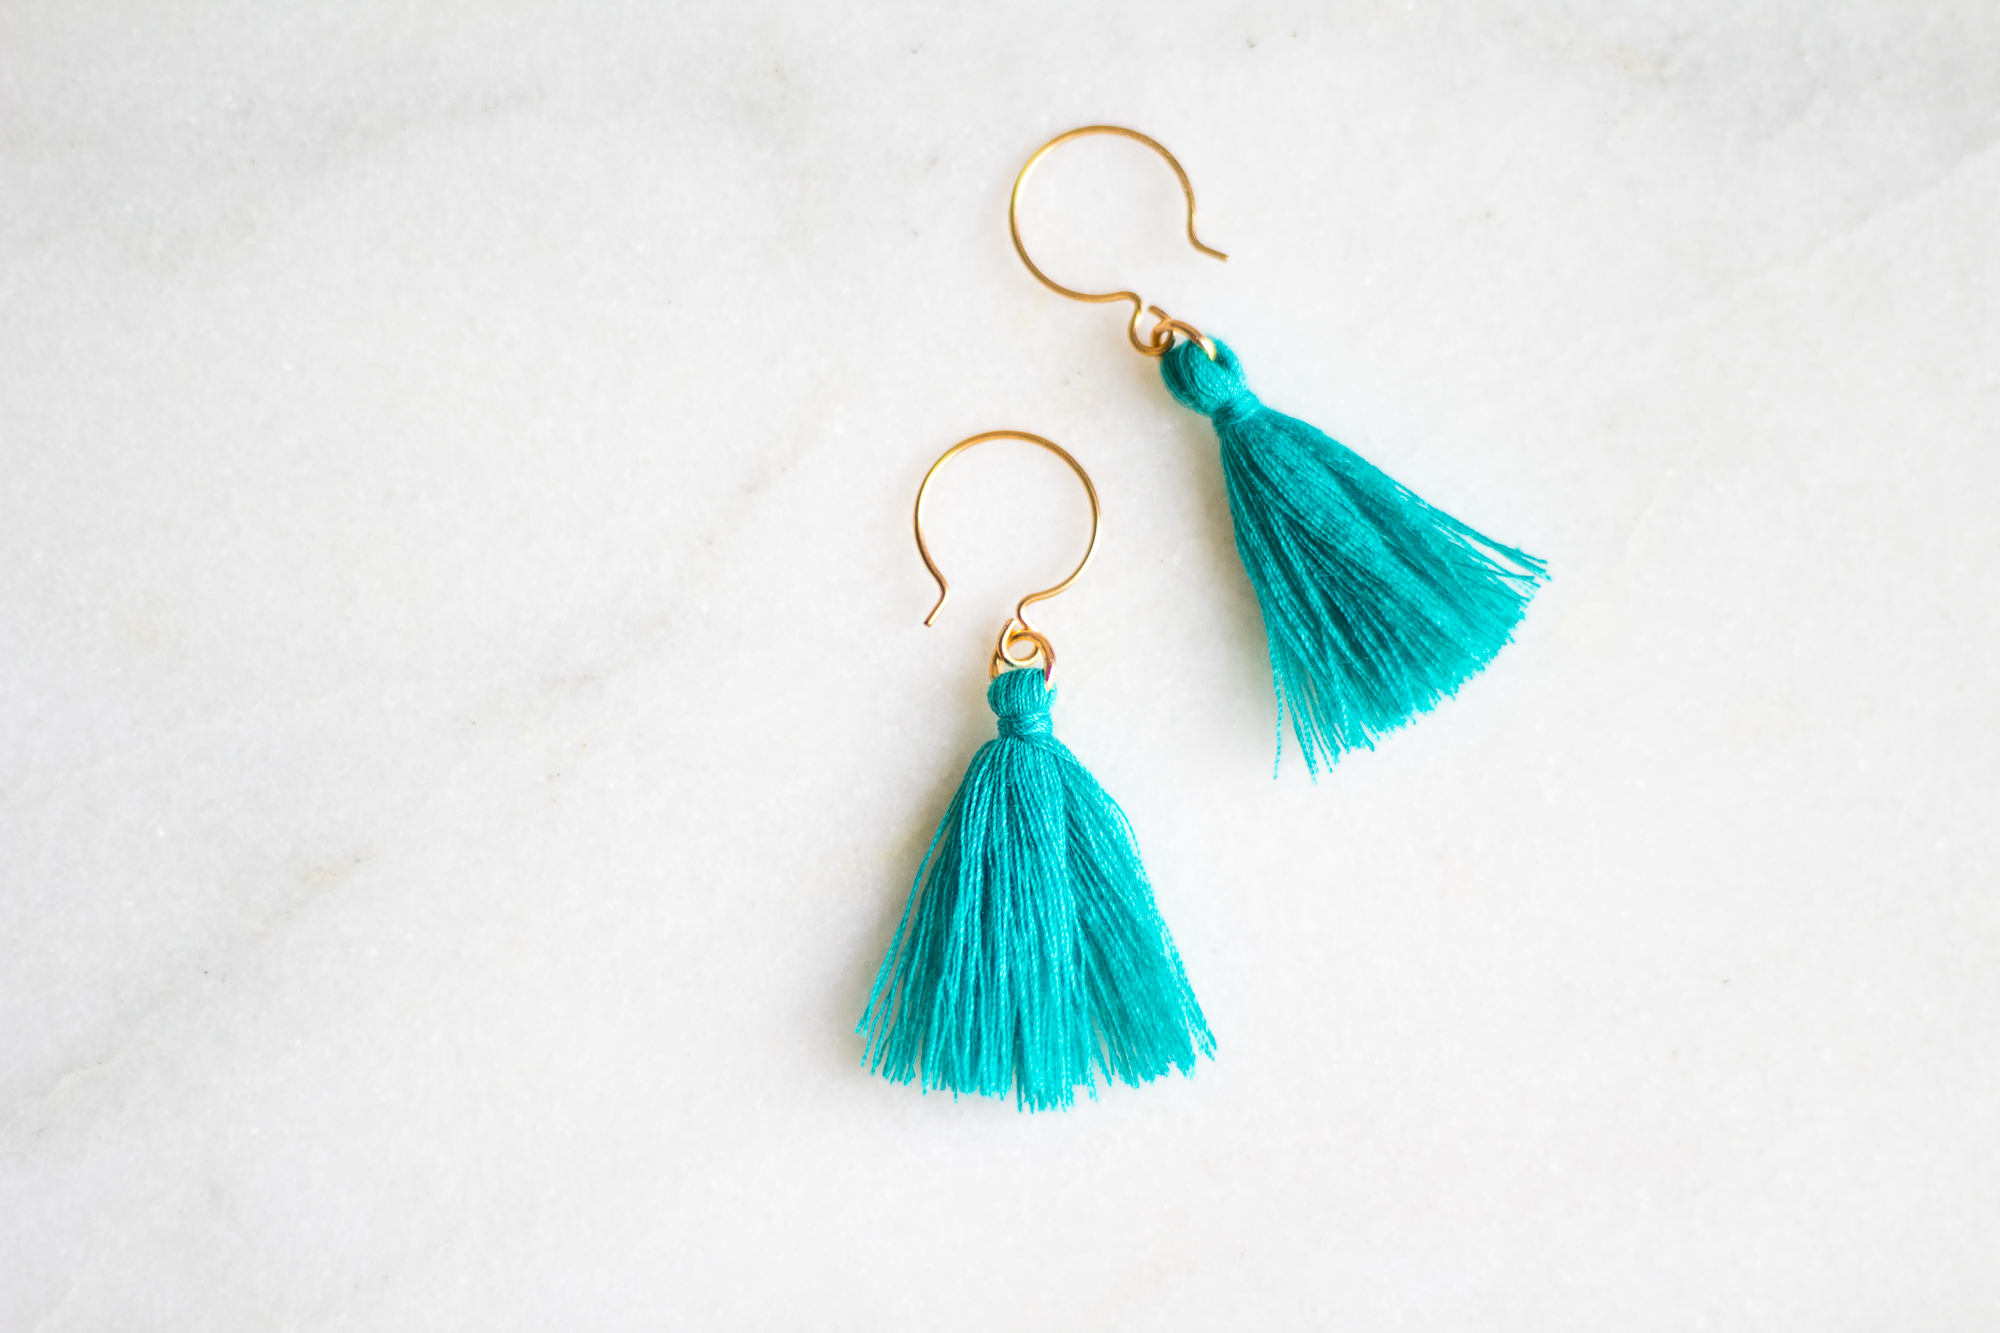 Diy Tassel Earrings Are The Perfect Handmade Mother S Day Gift